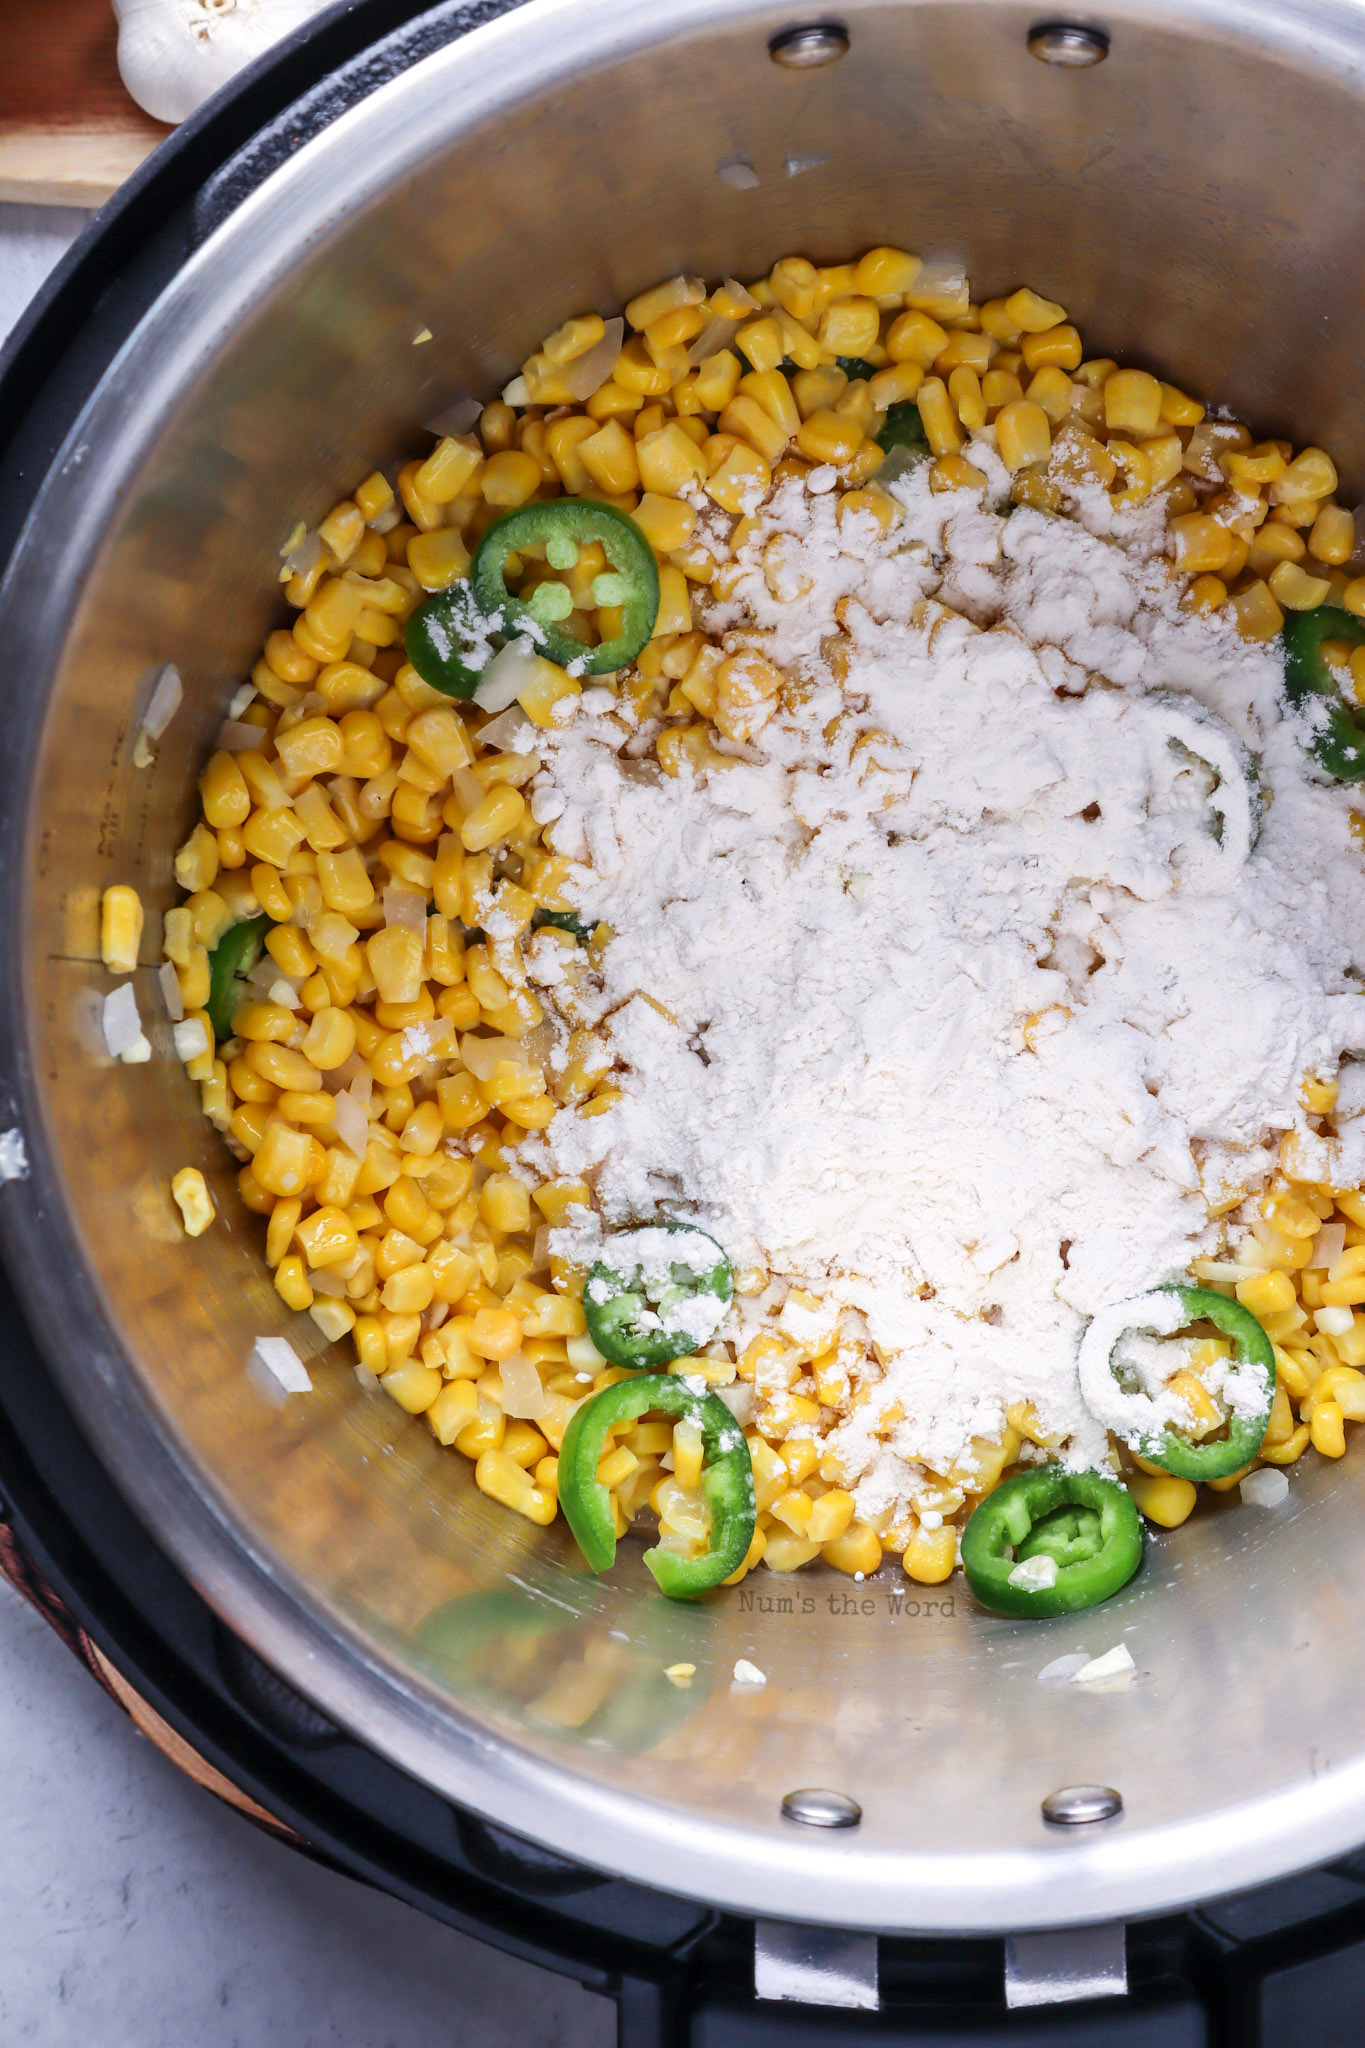 flour and elote seasoning added to corn mixture.